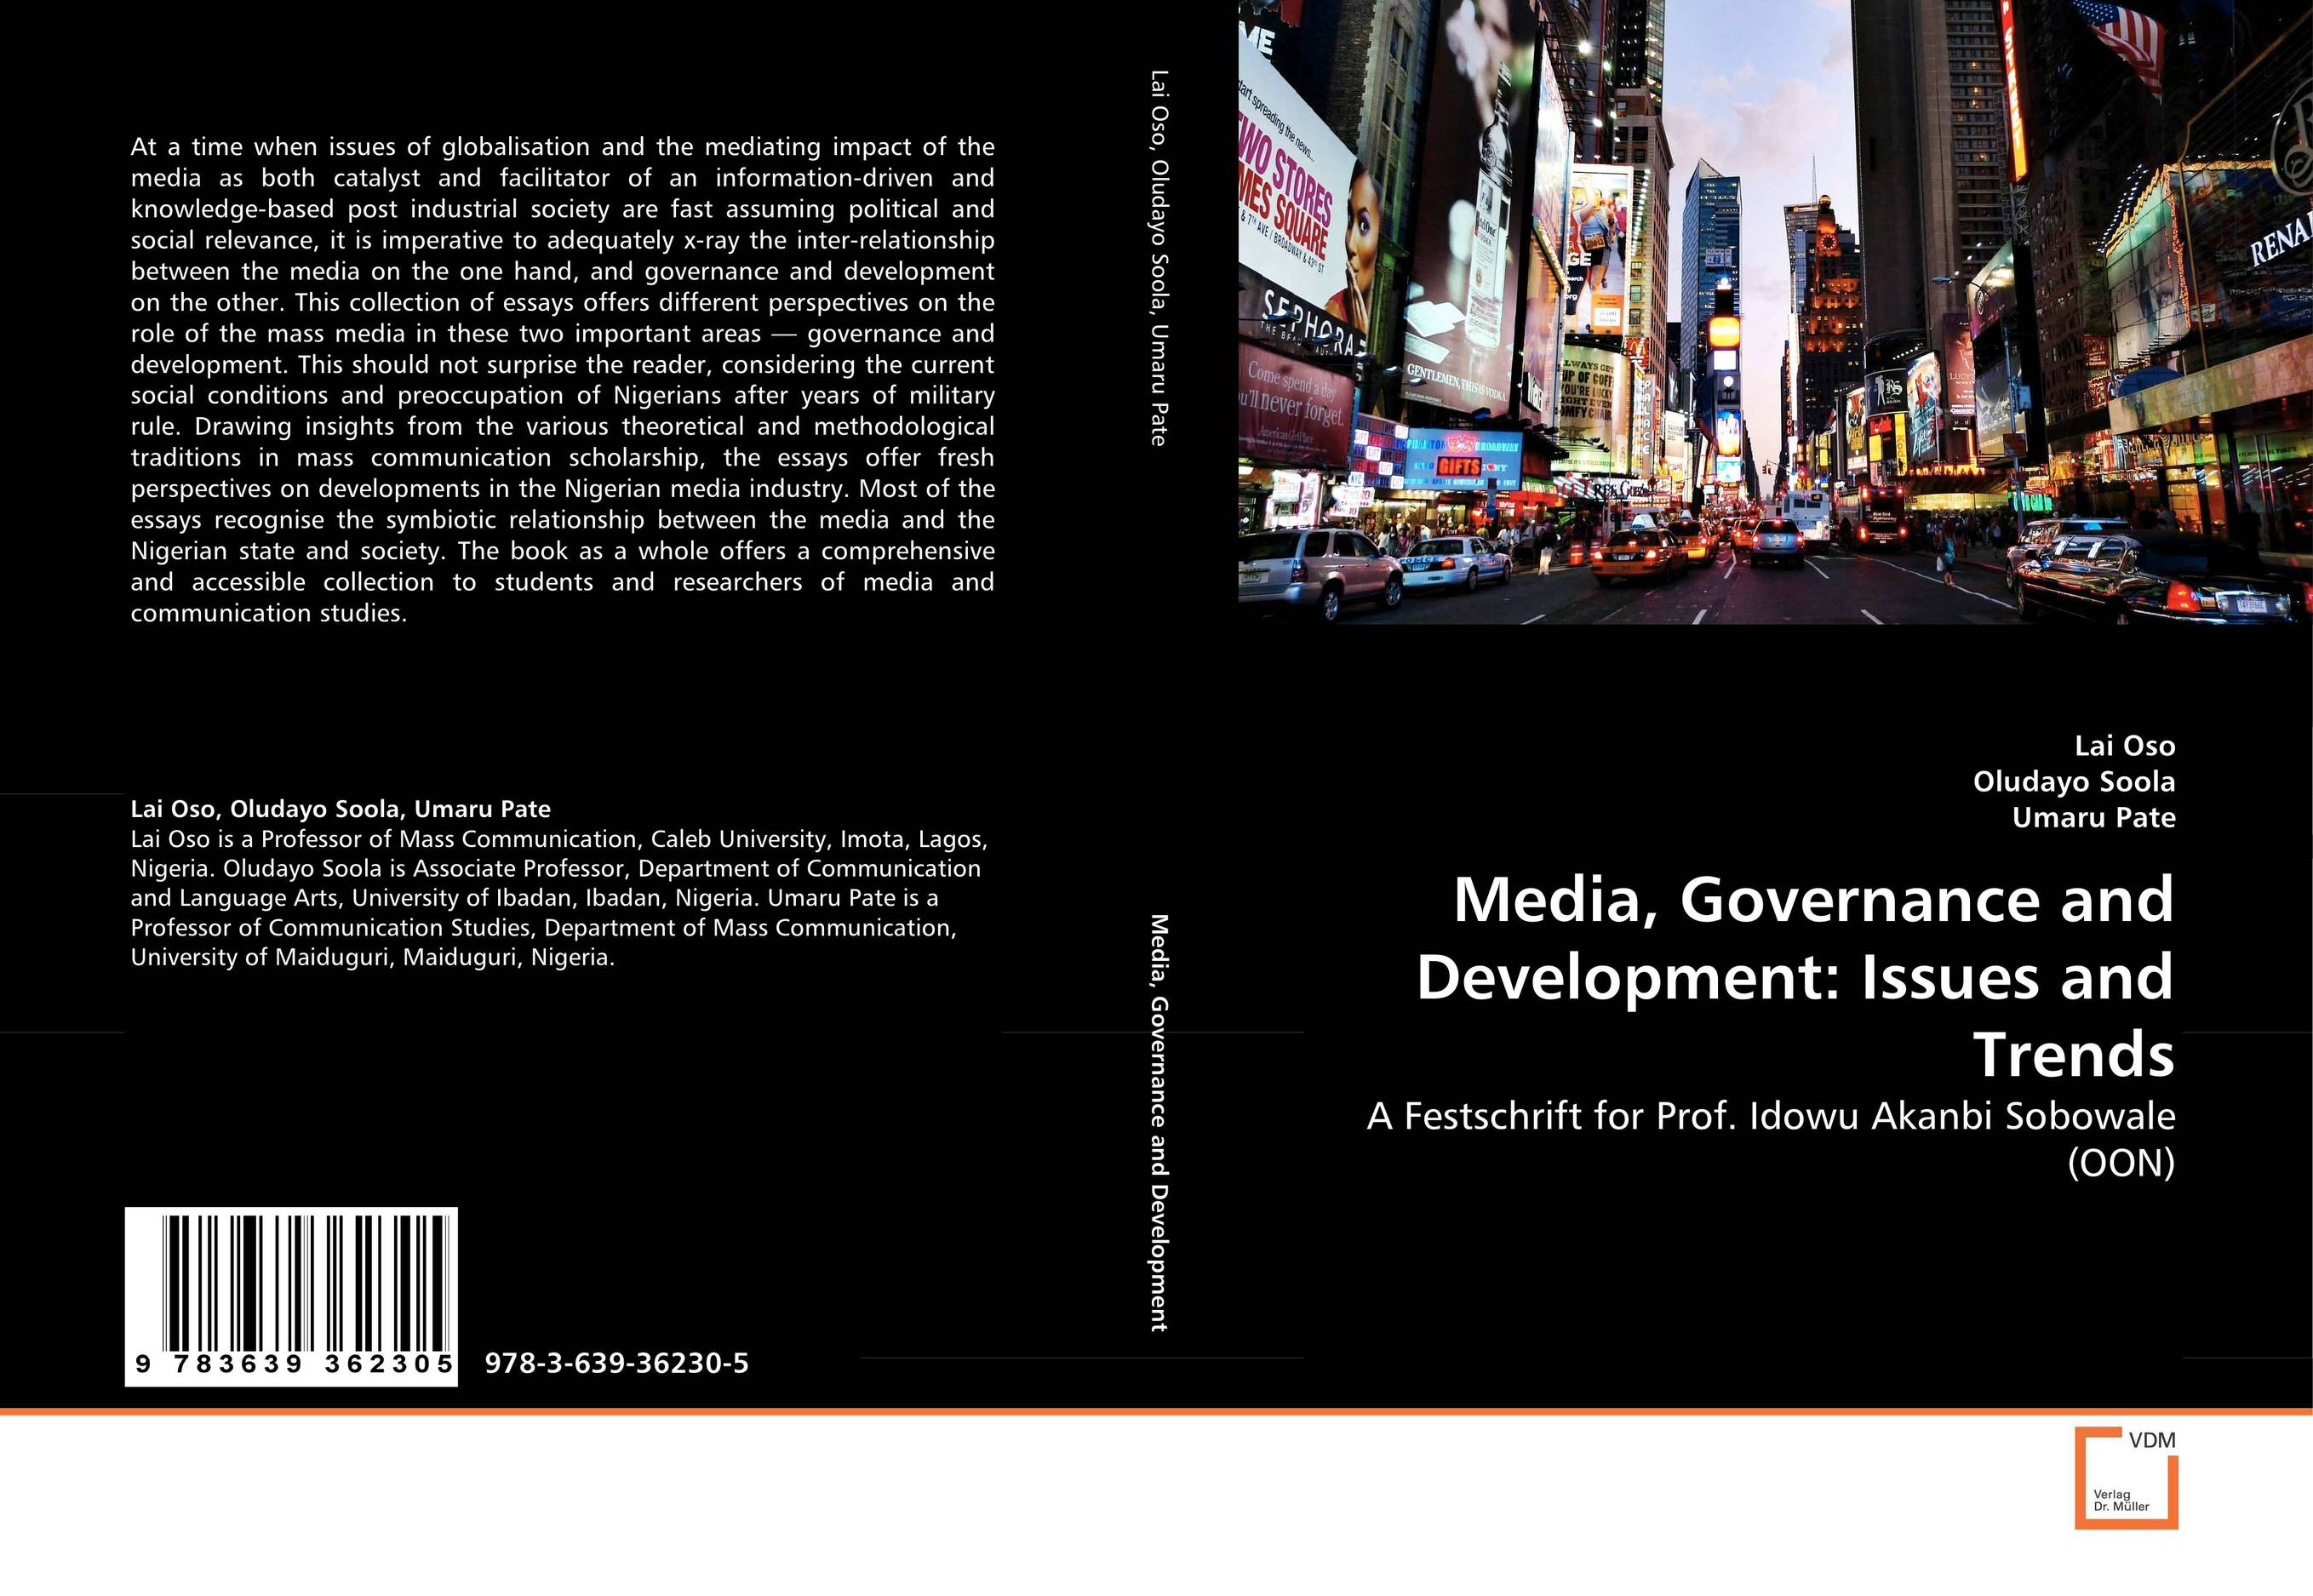 Media, Governance and Development: Issues and Trends shakespeare after mass media [9780312294540]